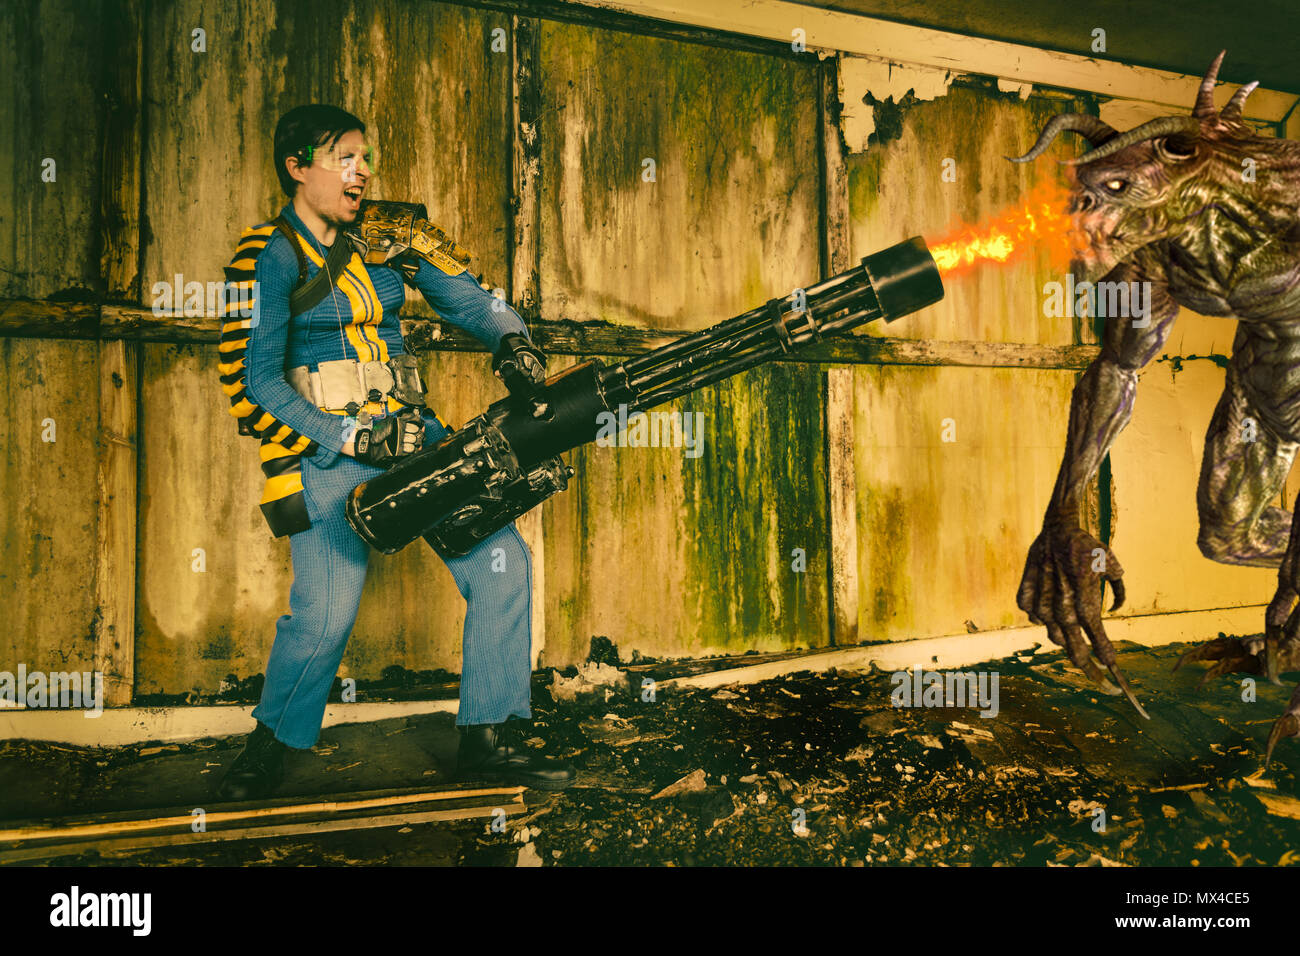 Fallout 76 vault dweller from the Fallout game from Bethesda